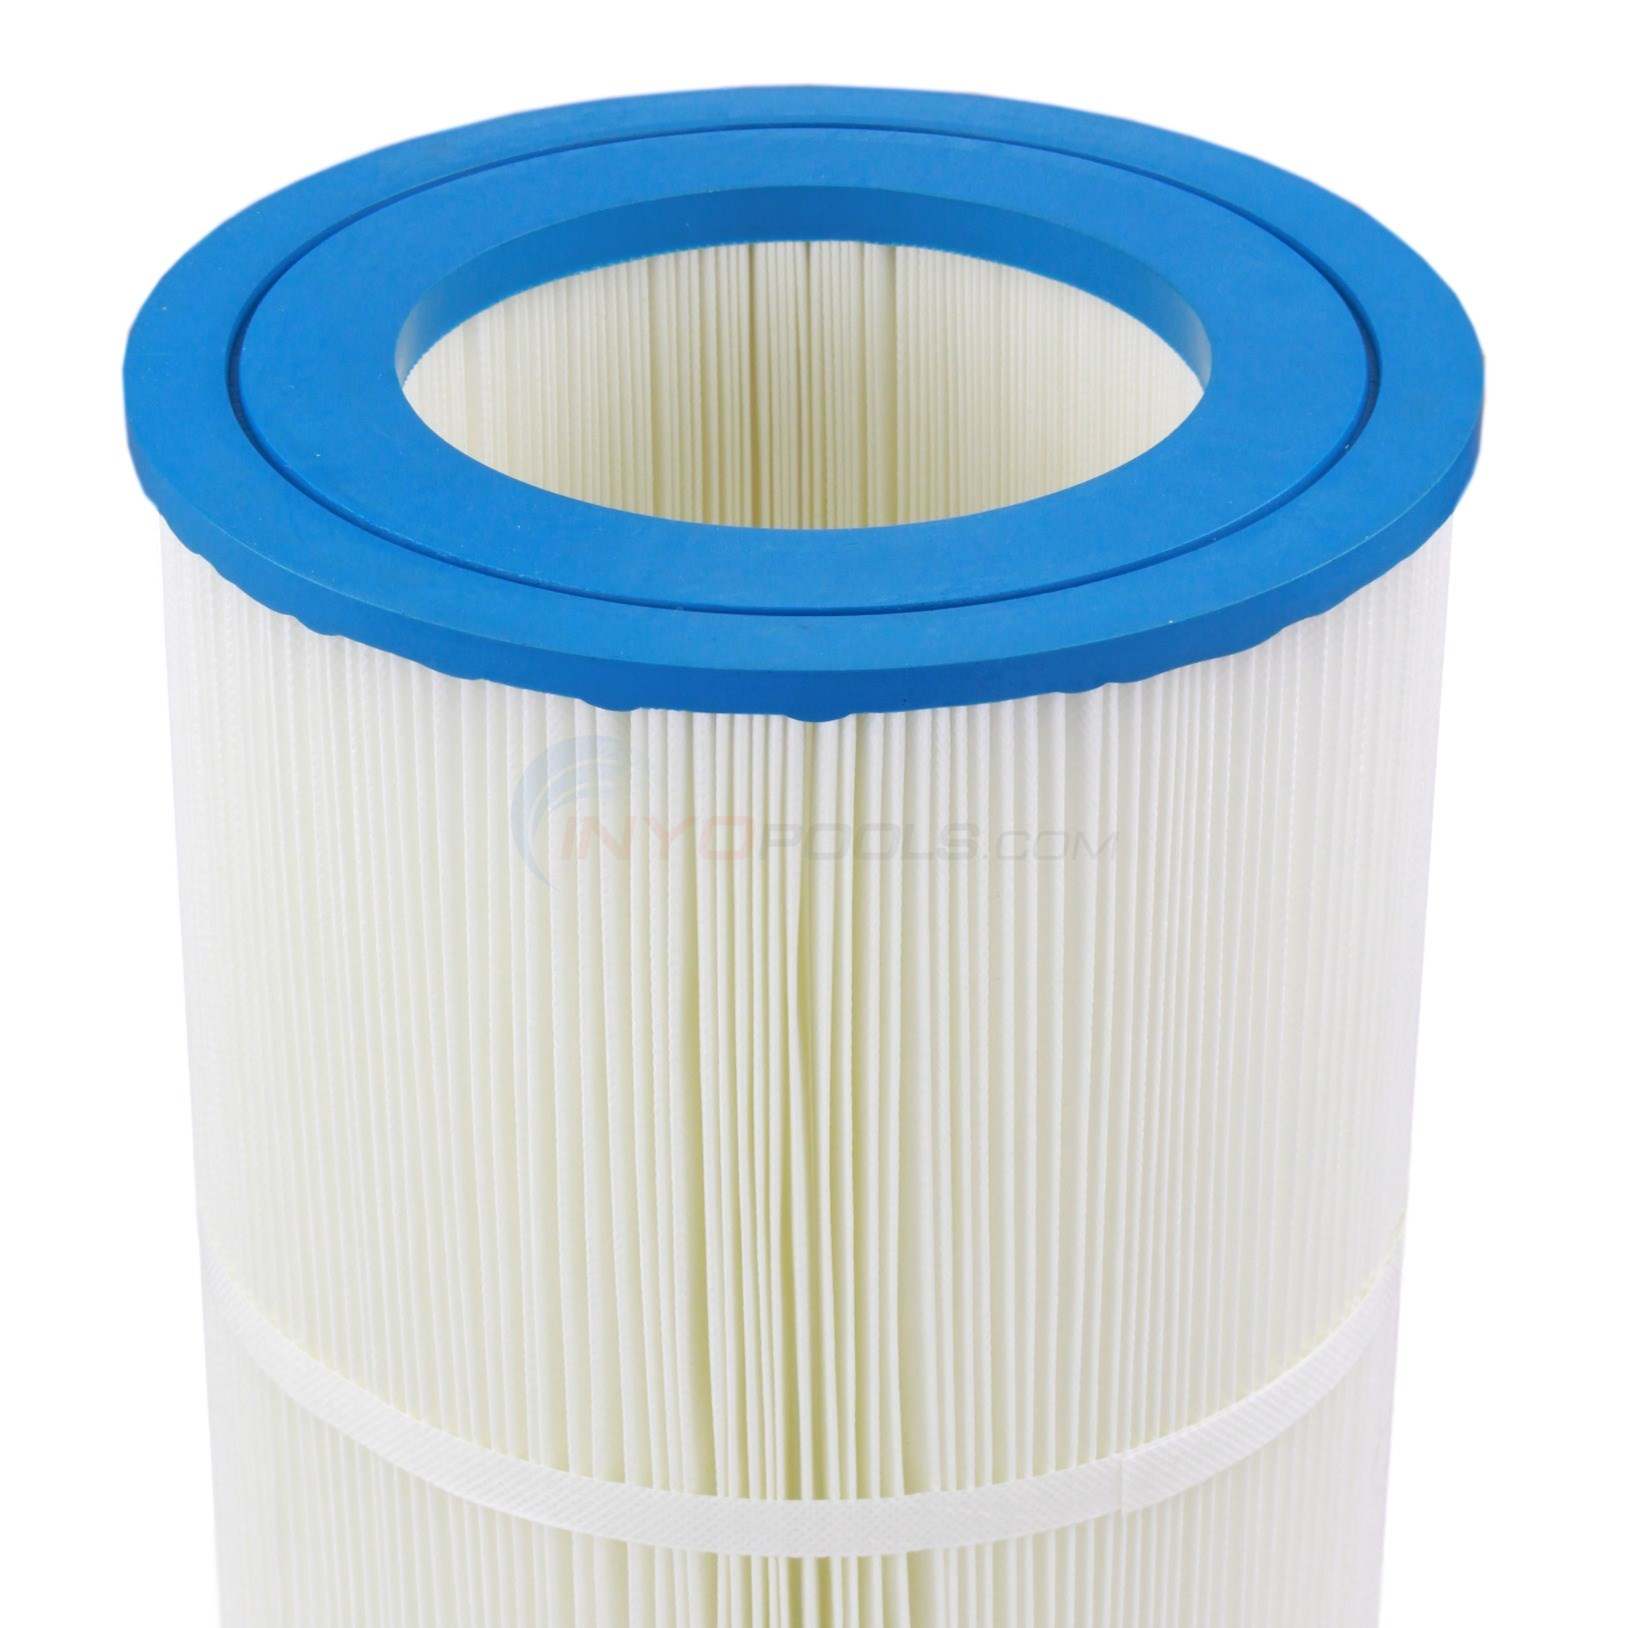 PureLine Waterway Clearwater 100 Replacement Cartridge (C-9402) - PL0158